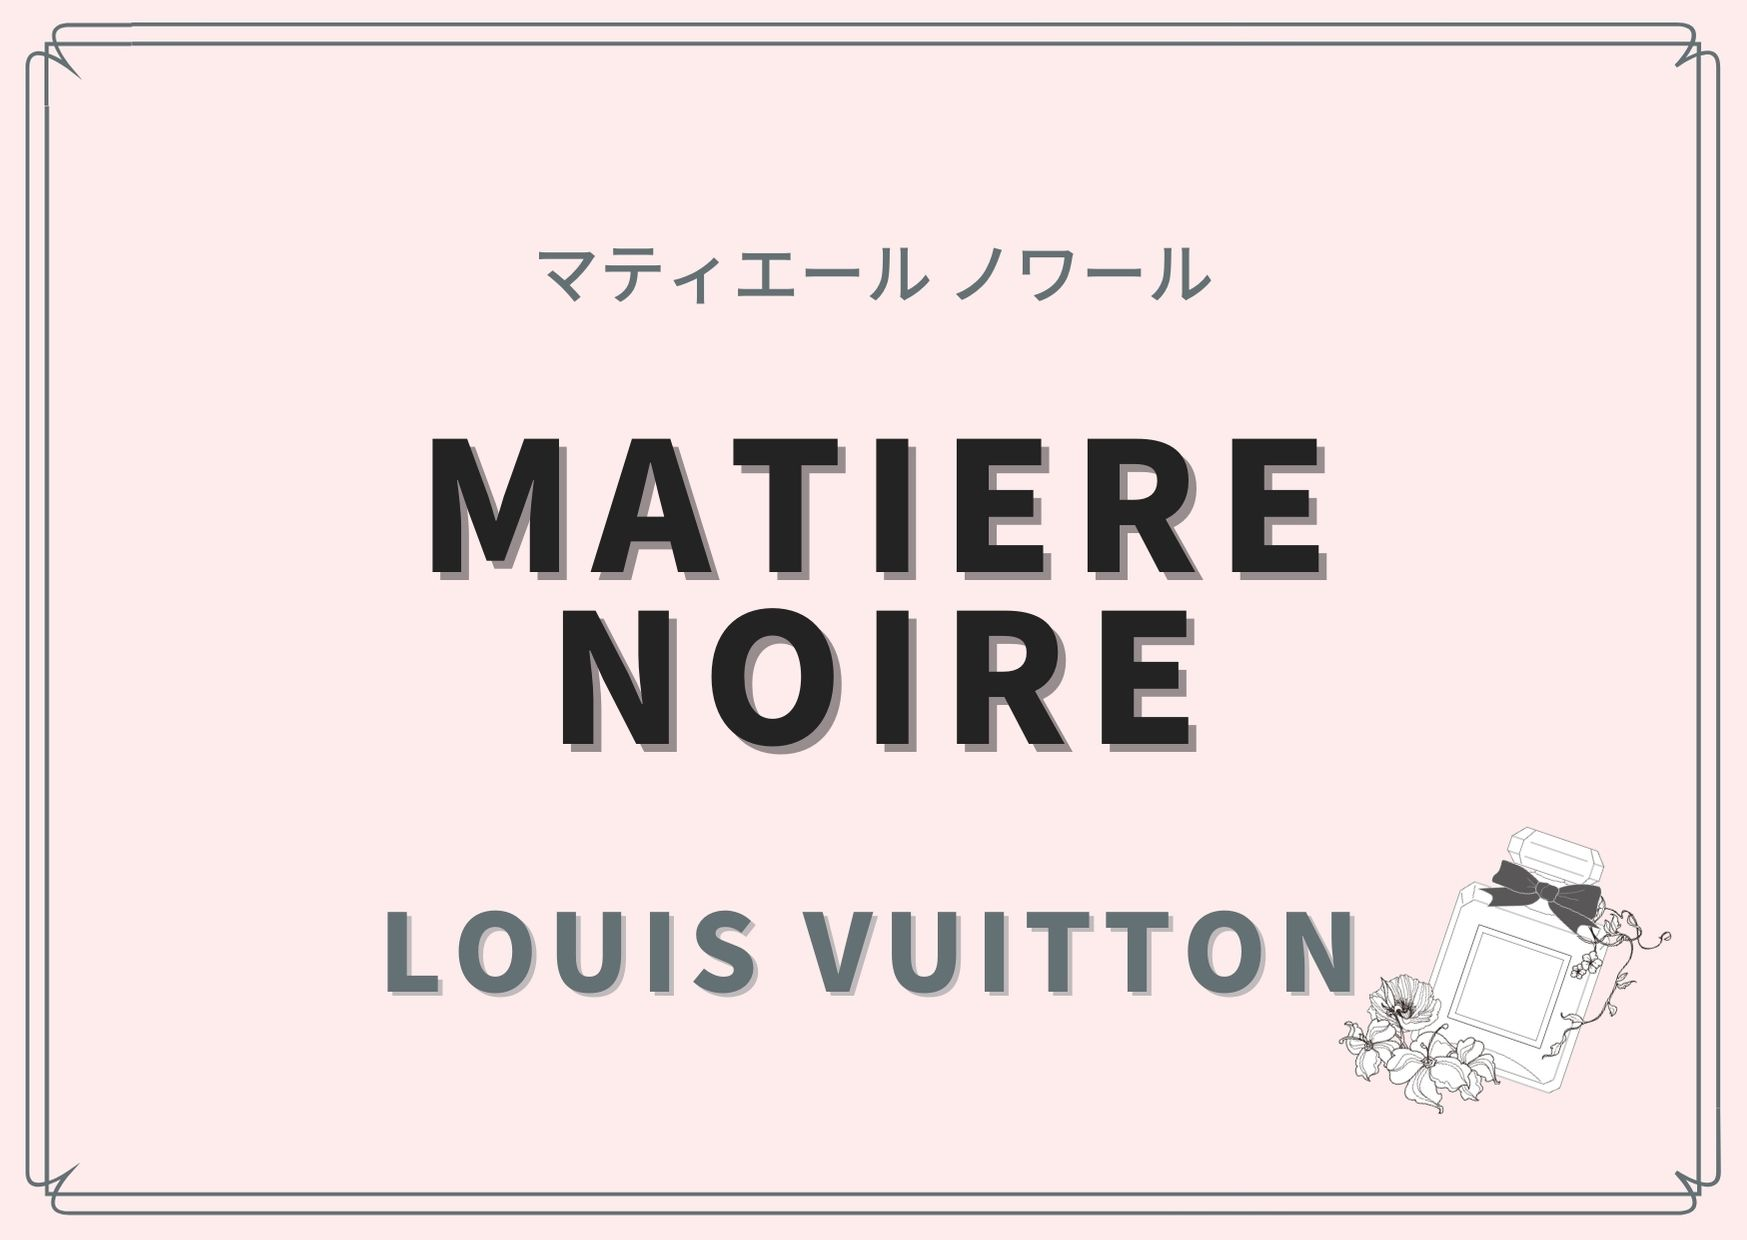 MATIERE NOIRE(マティエール ノワール)/LOUIS VUITTON(ルイ ヴィトン)